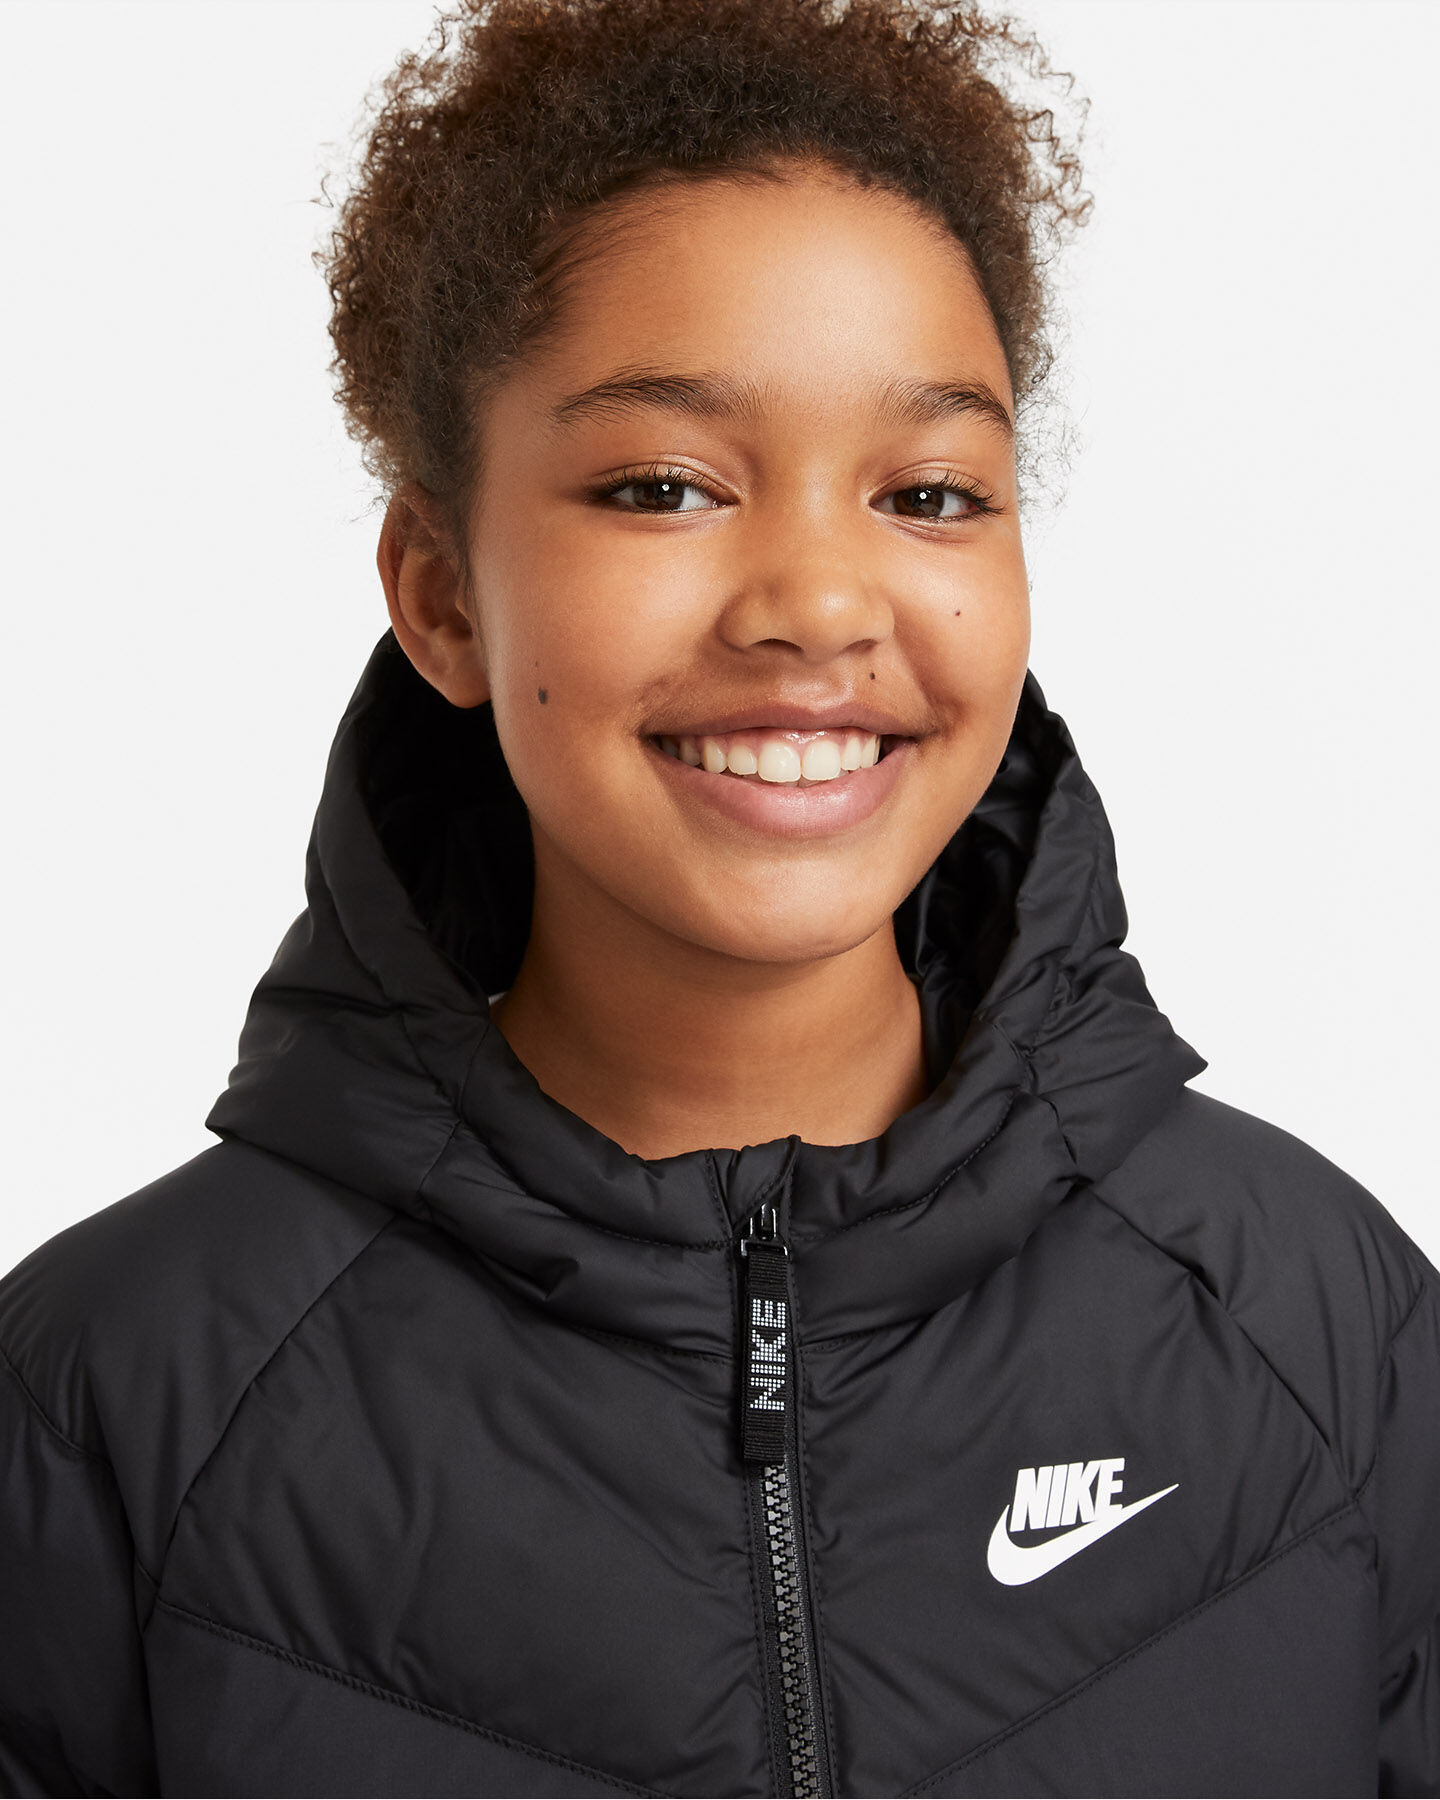 Giubbotto NIKE PADDED JR S5223353 scatto 4